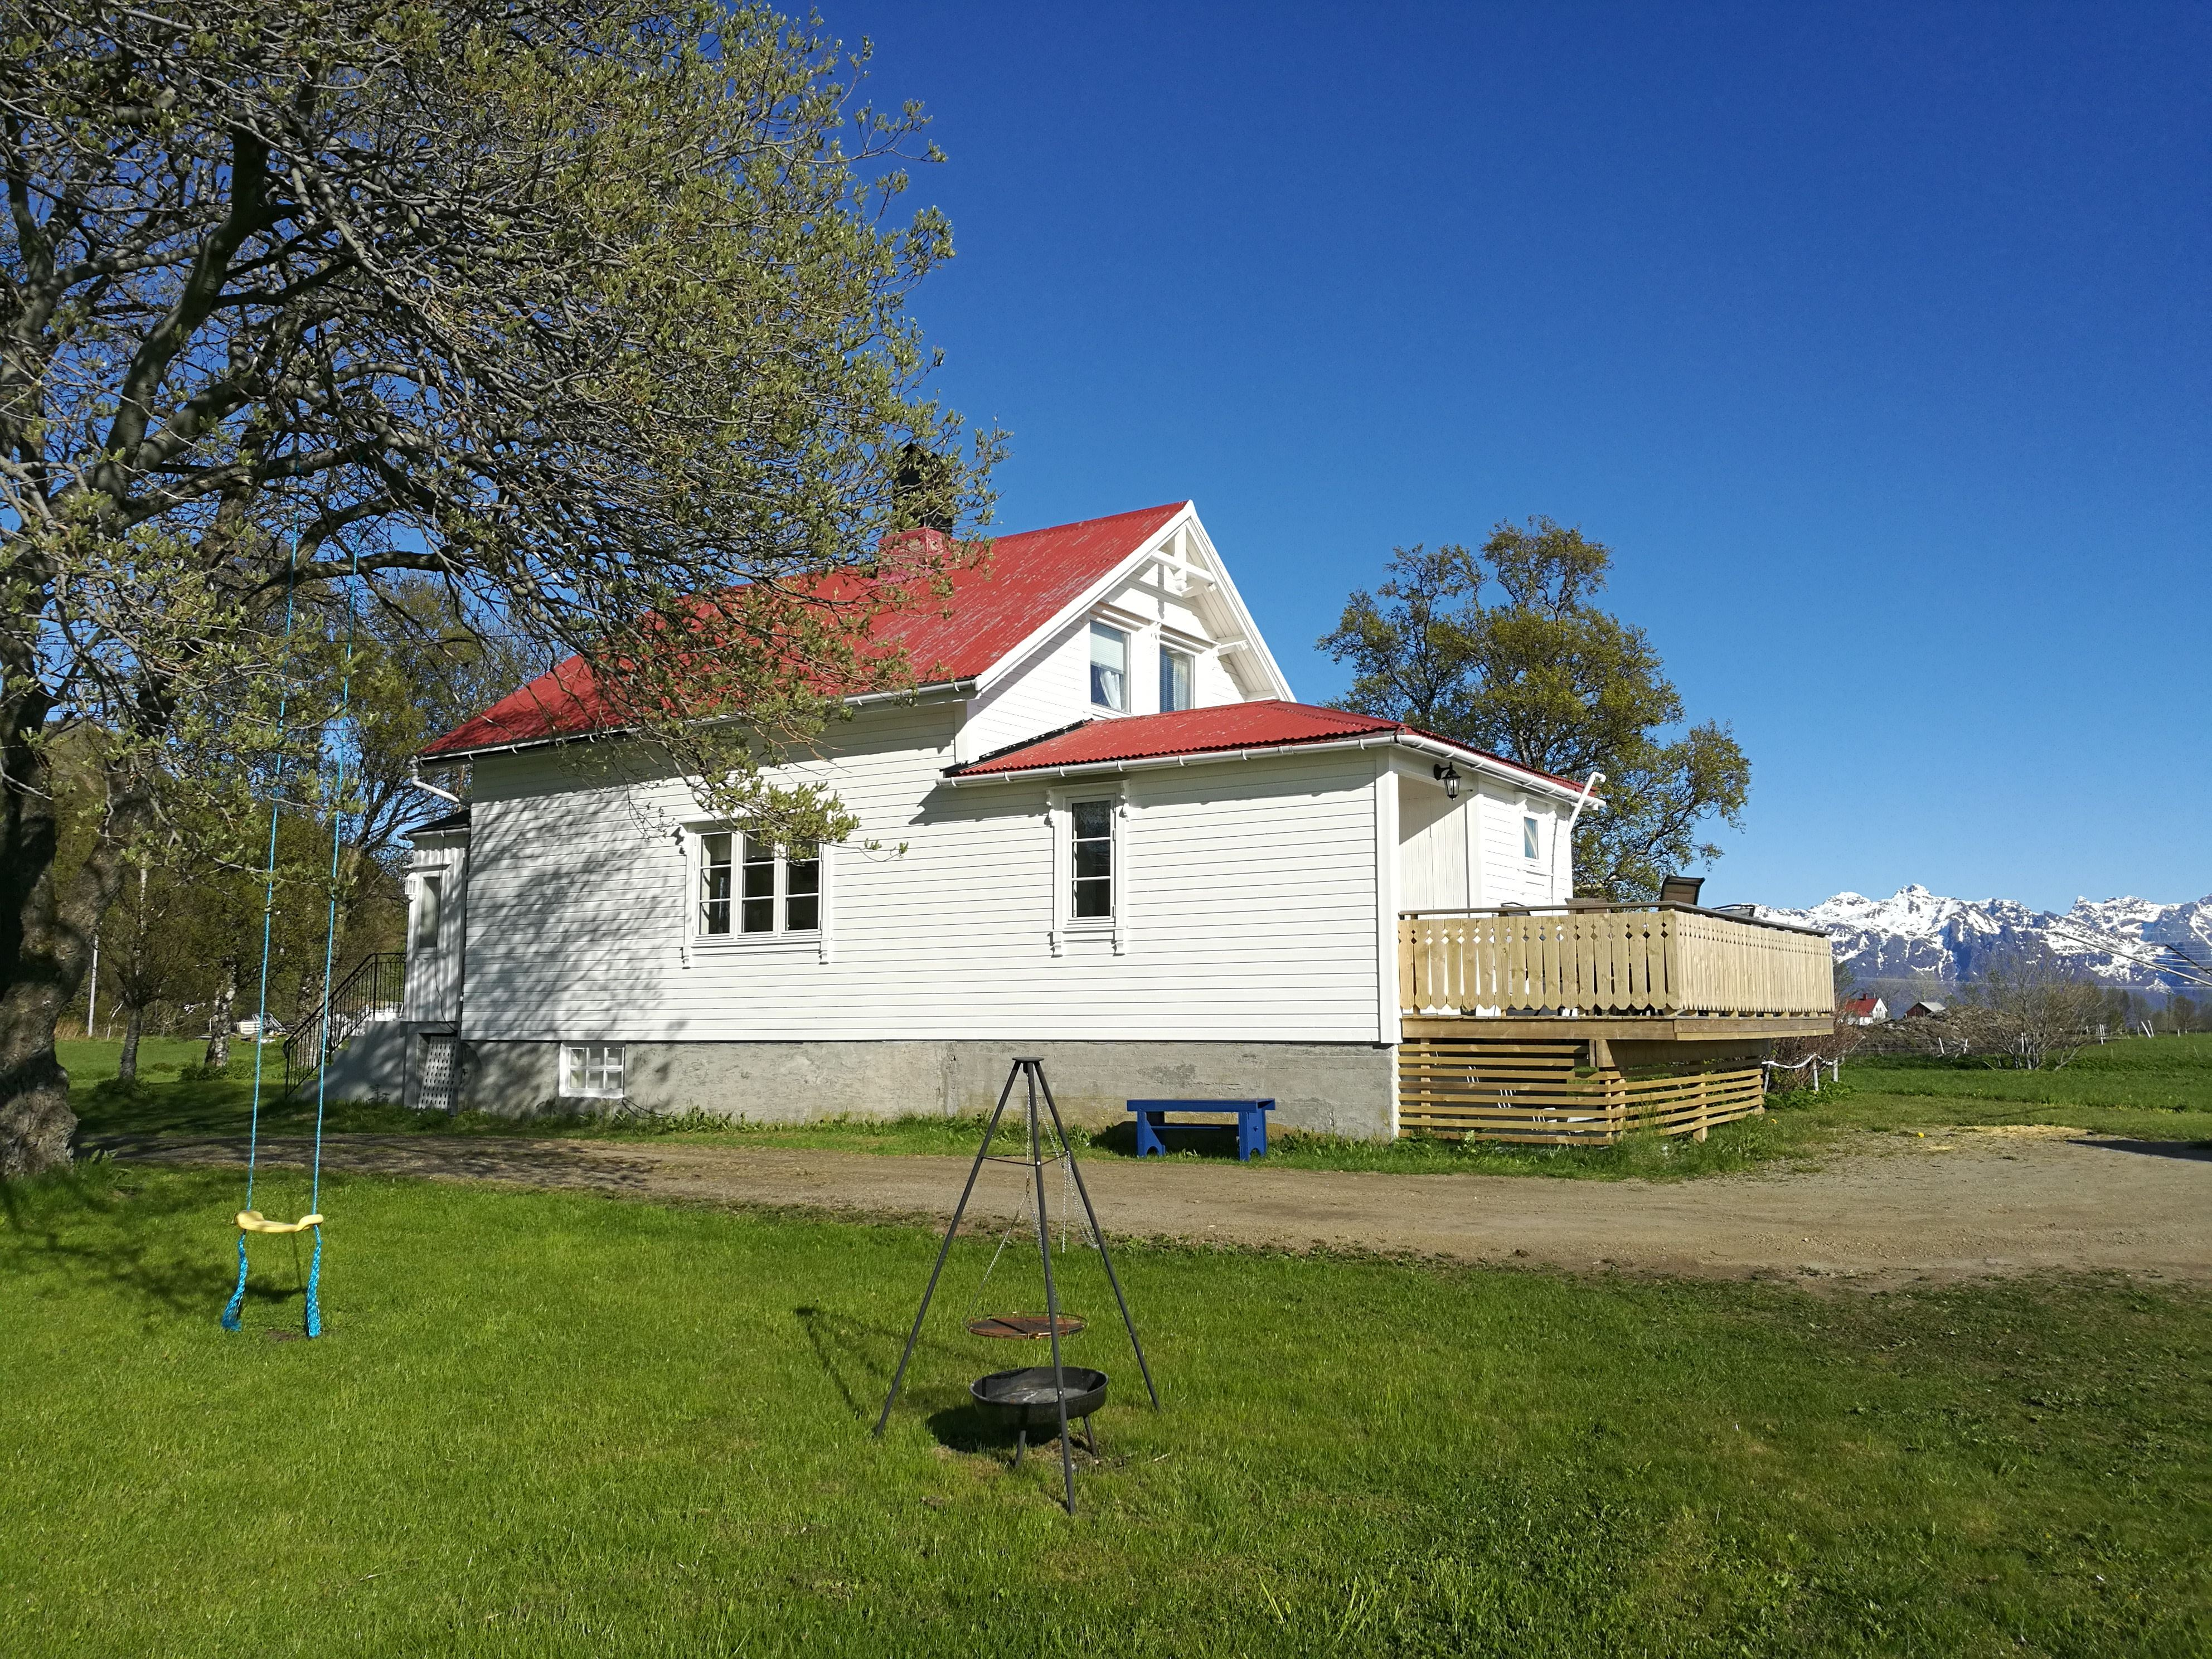 Borghildstua,  © Borghildstua, Borghildstua Vacation Home - Arctictouch